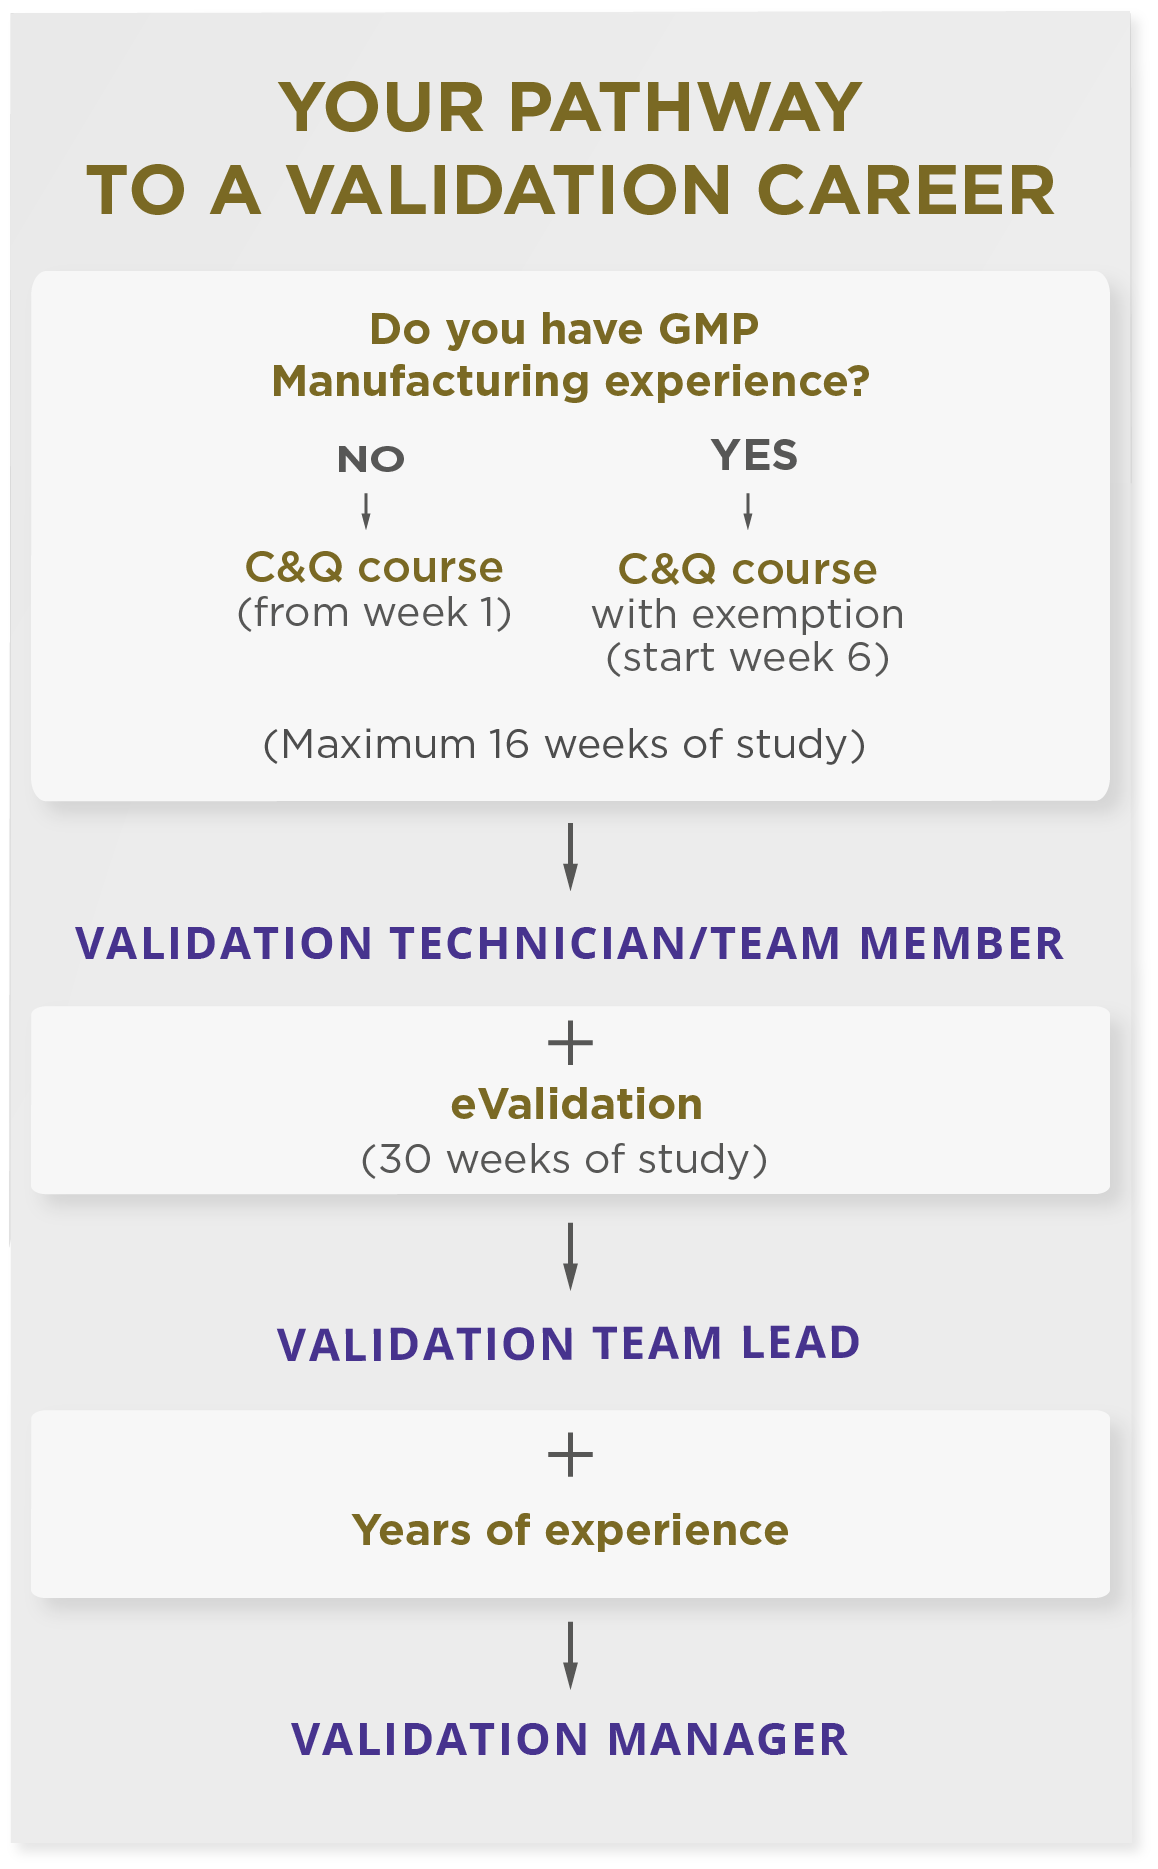 flow diagram showing pathway through a career in validation